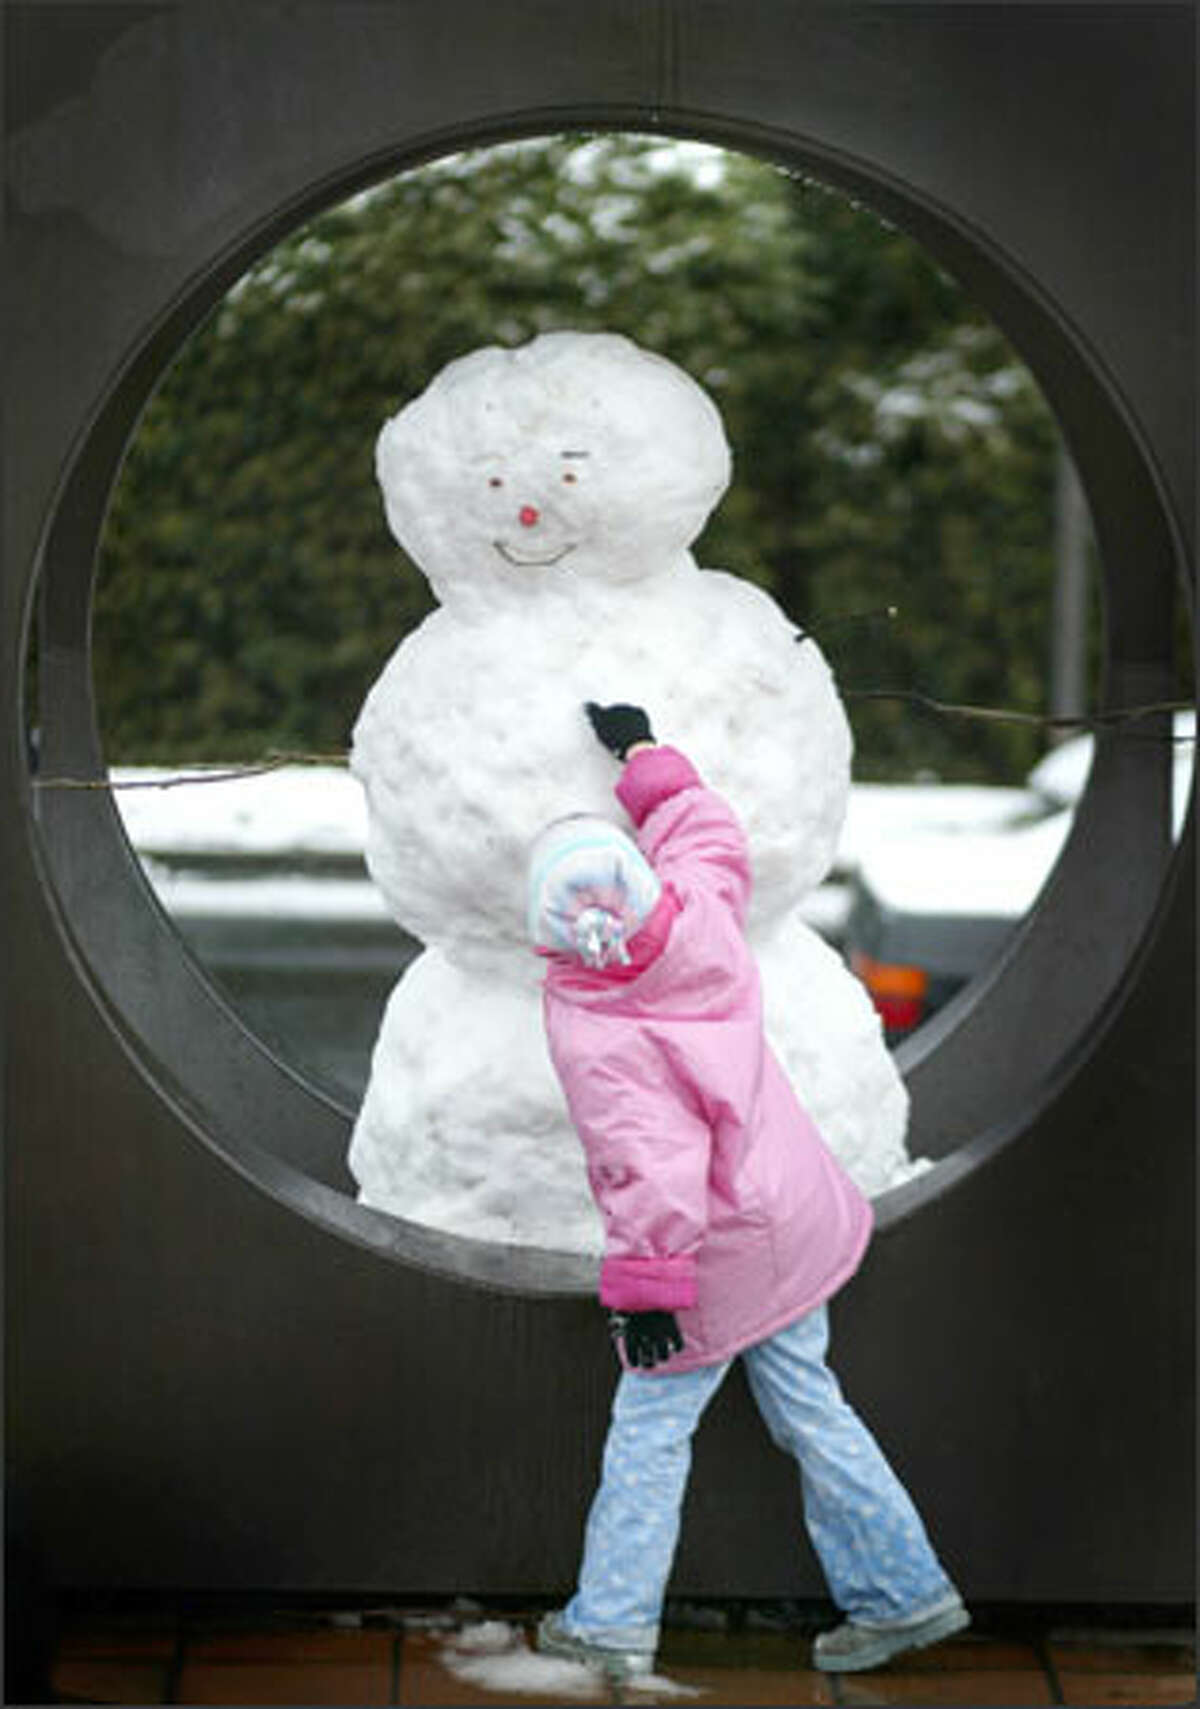 Sanuye Ford, 6, checks out the button of a snowman built inside the sculpture at Kerry Park on Queen Anne Hill. Seattle received a dusting of snow, with more of it falling north of downtown, early in the day. It brought out residents ready to play as well as city workers ready to plow and sand. The snow quickly melted.